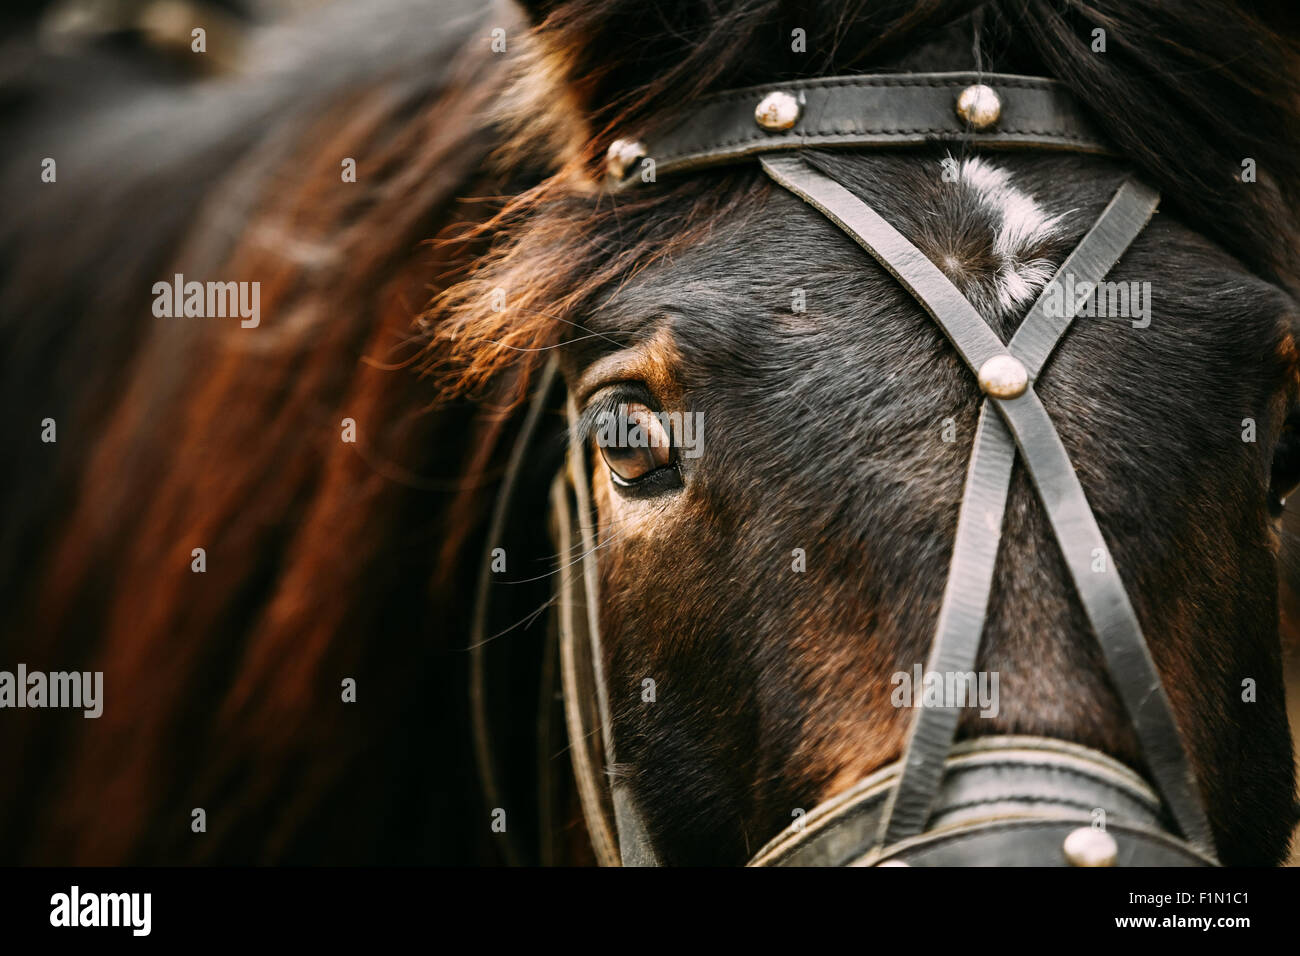 Close Up Of Arabian Bay Horse- Very Shallow Field Of Depth - Stock Image